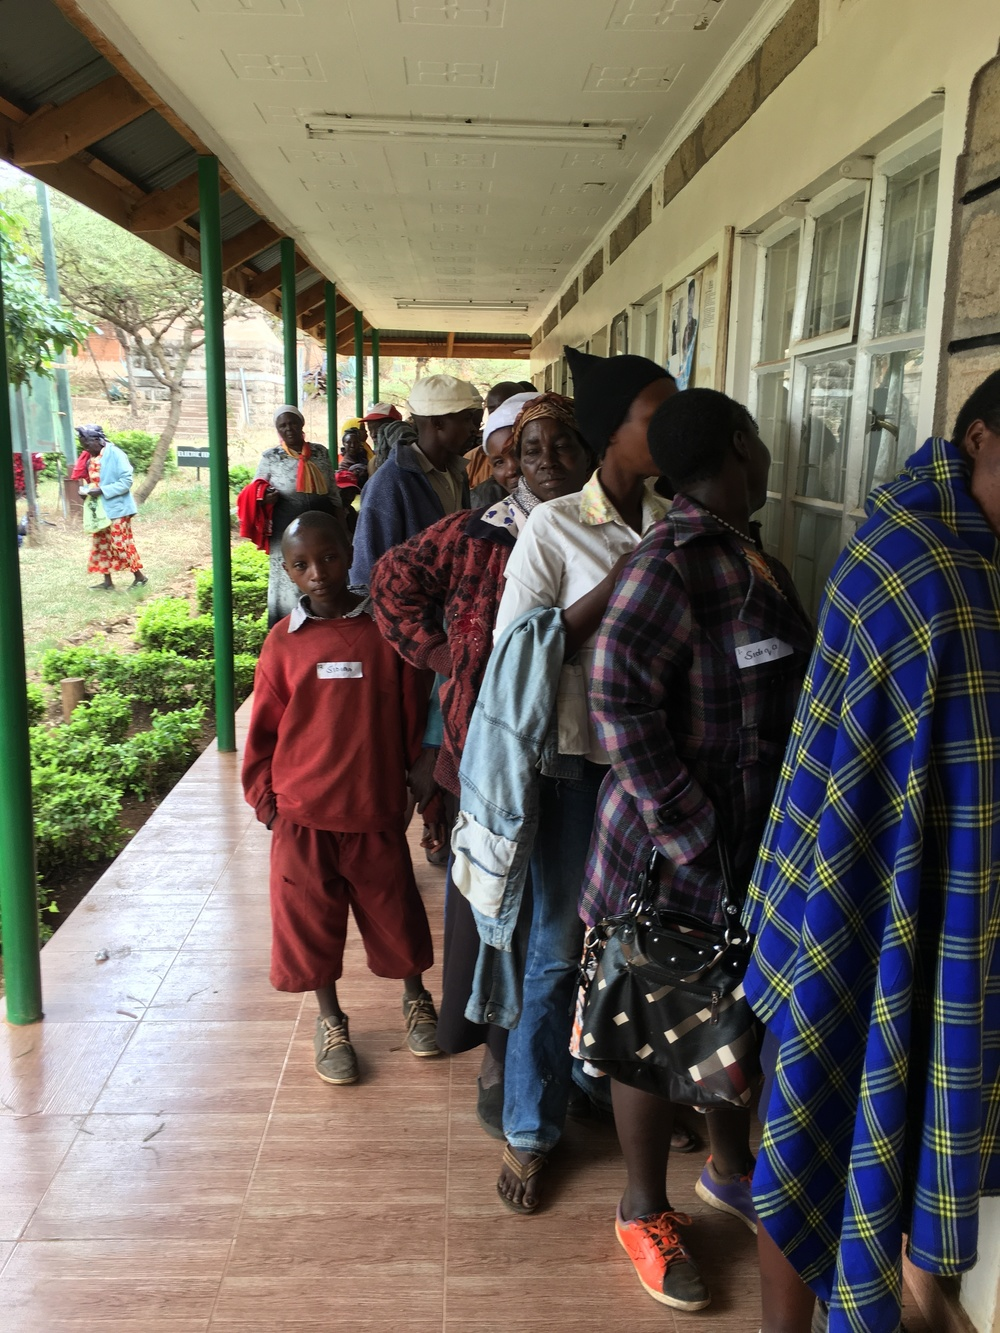 Patients lined up for Dr. Sidiqa